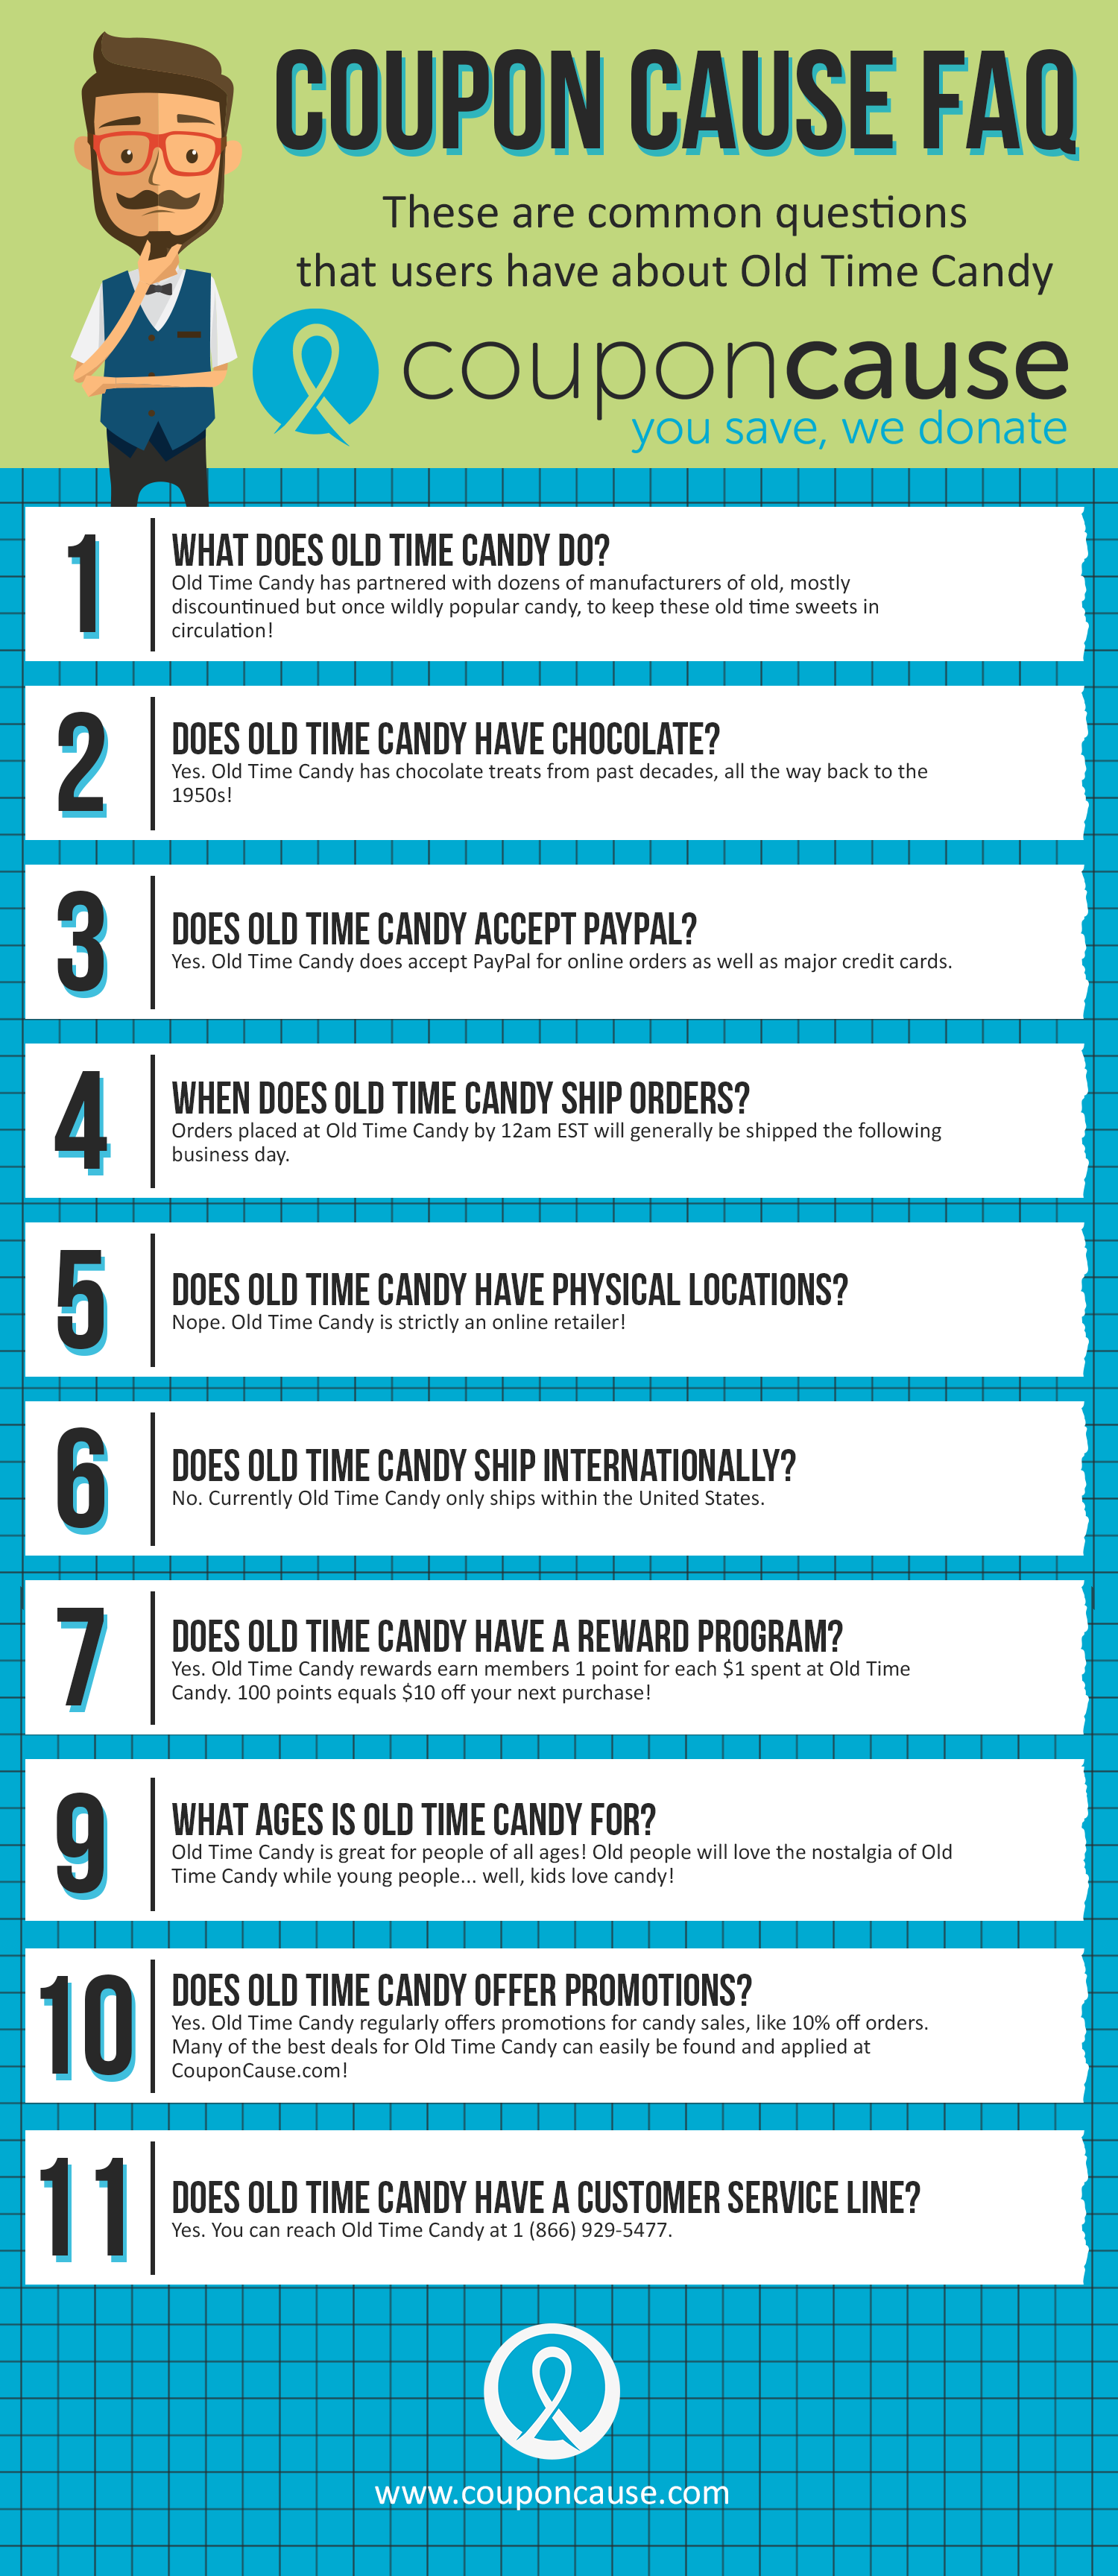 Old Time Candy Coupon Cause FAQ (C.C. FAQ) Infographic